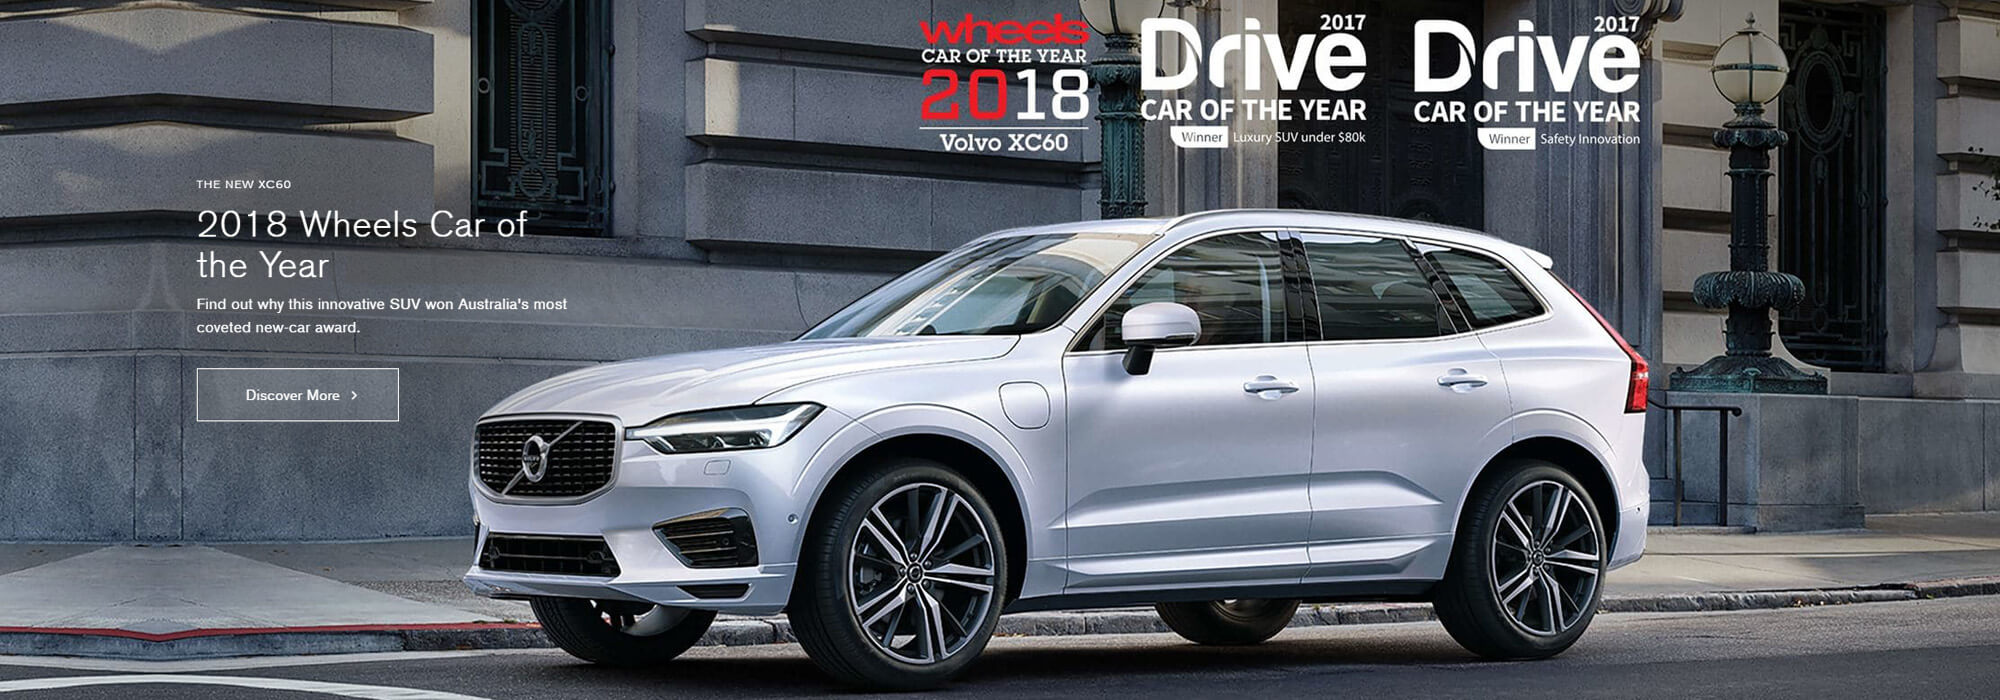 XC60 - Wheels Car of the Year 2018